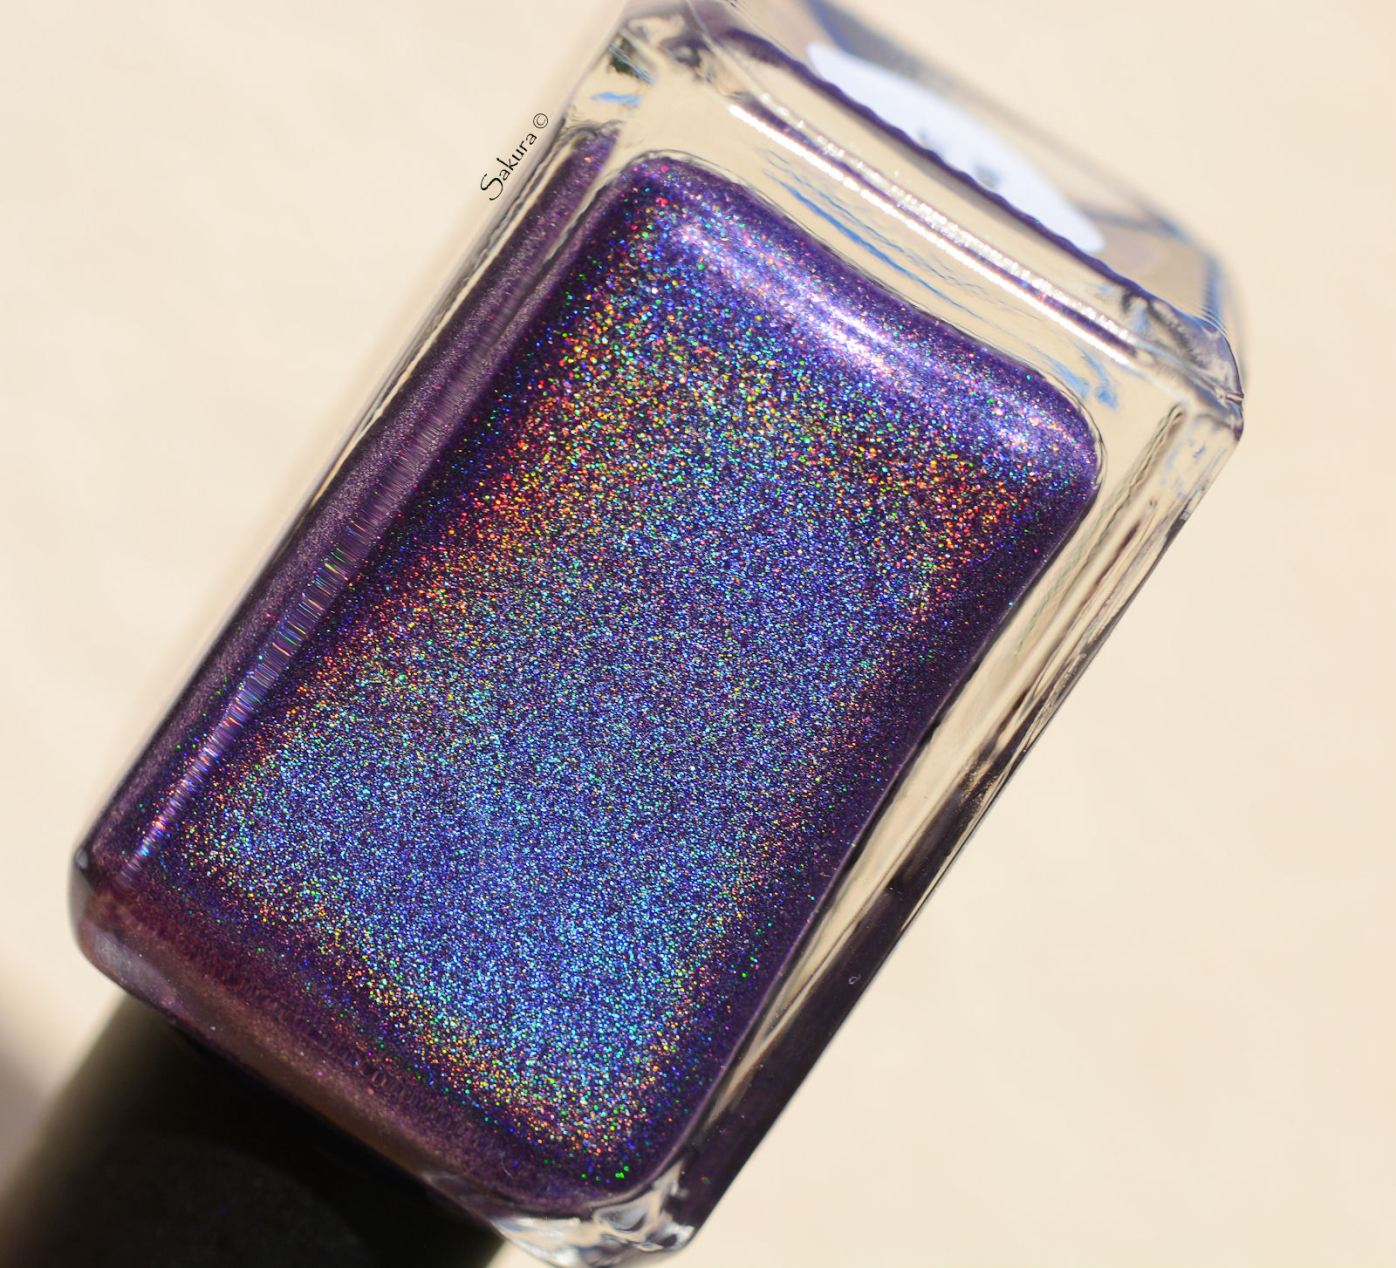 THE HOLO HOOKUP MARCH 6